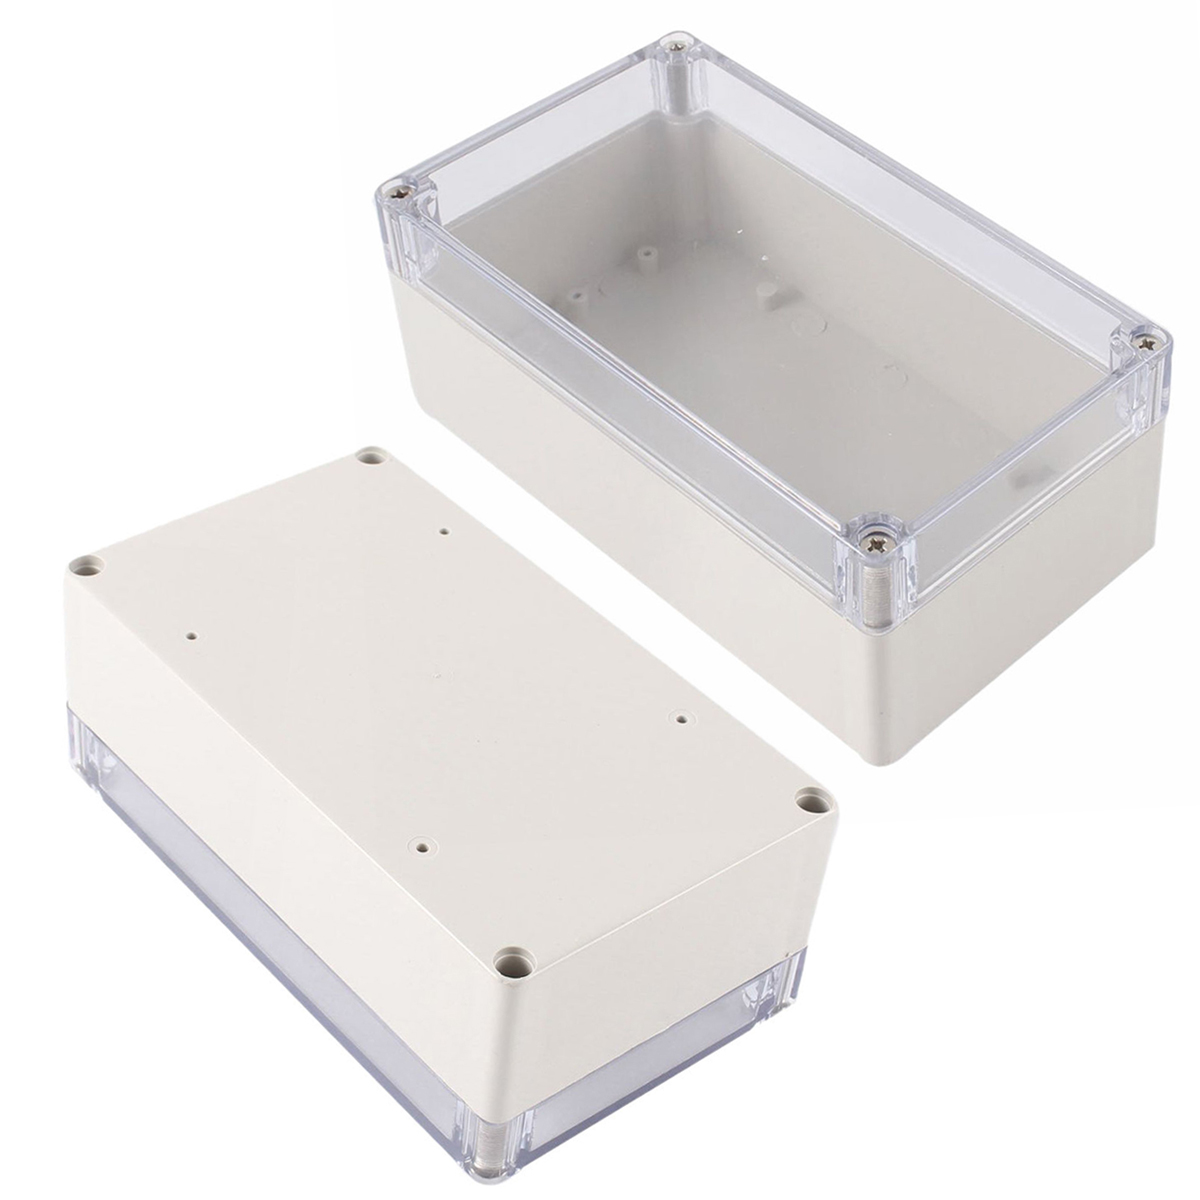 лучшая цена 1pc Mayitr Waterproof Enclosure Case Clear Cover Plastic DIY Electronic Project Instrument Box 158mmx90mmx60mm